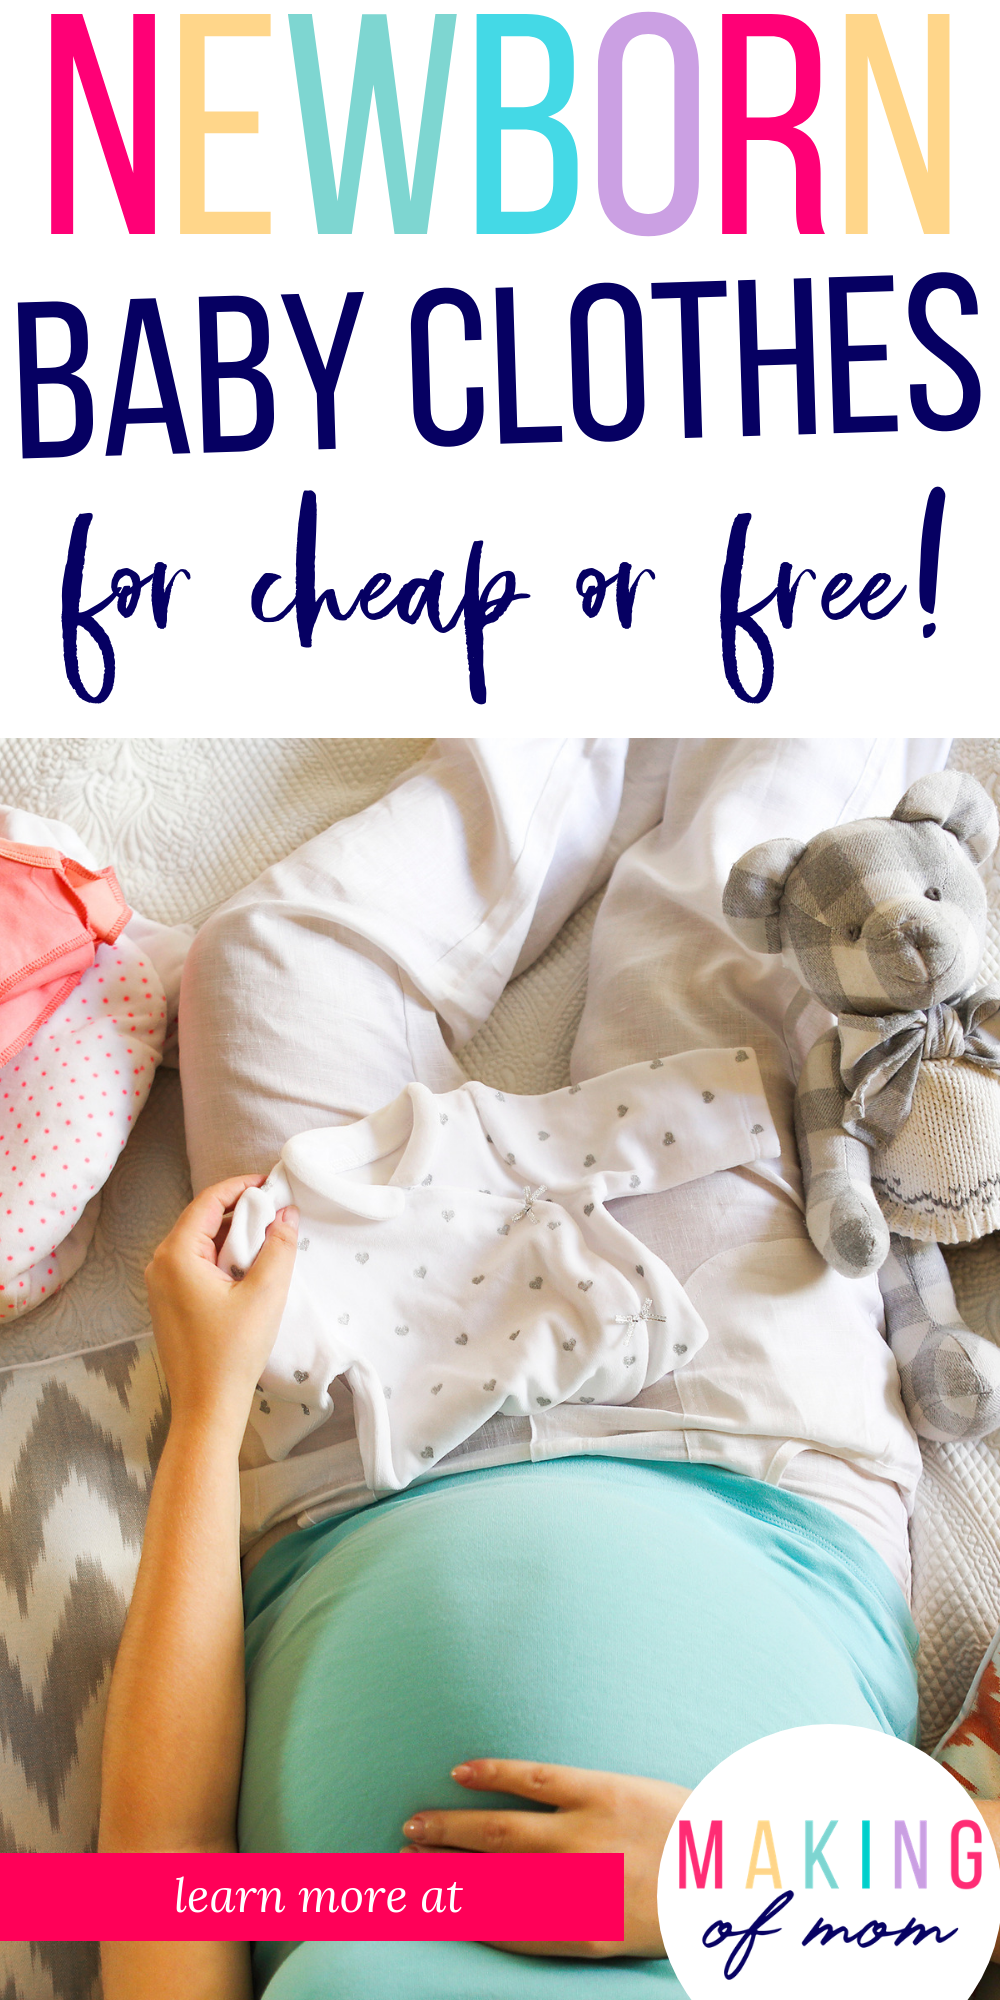 Babies need so many clothes! Want to know where to get ...